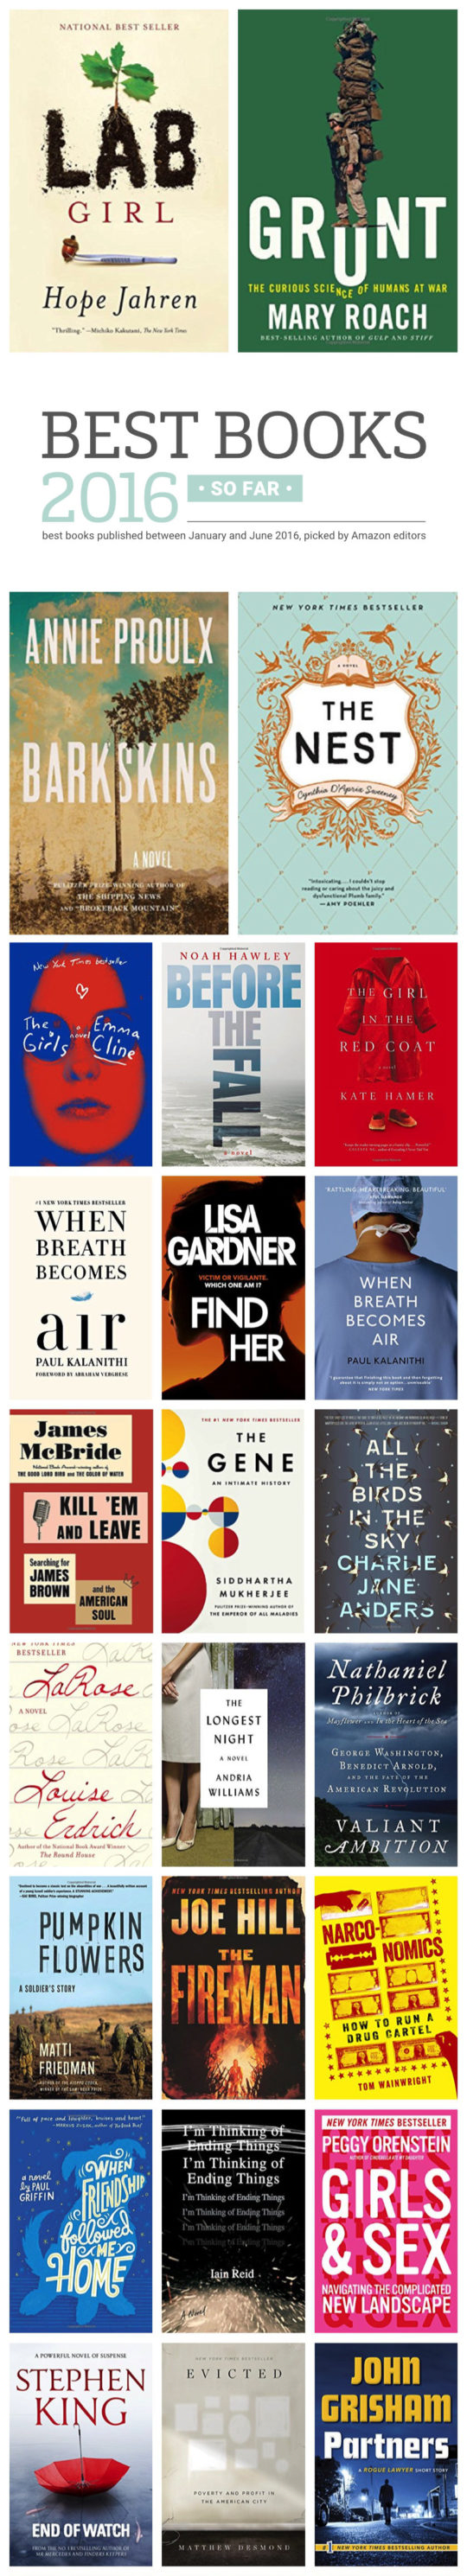 Best books of 2016 so far #infographic